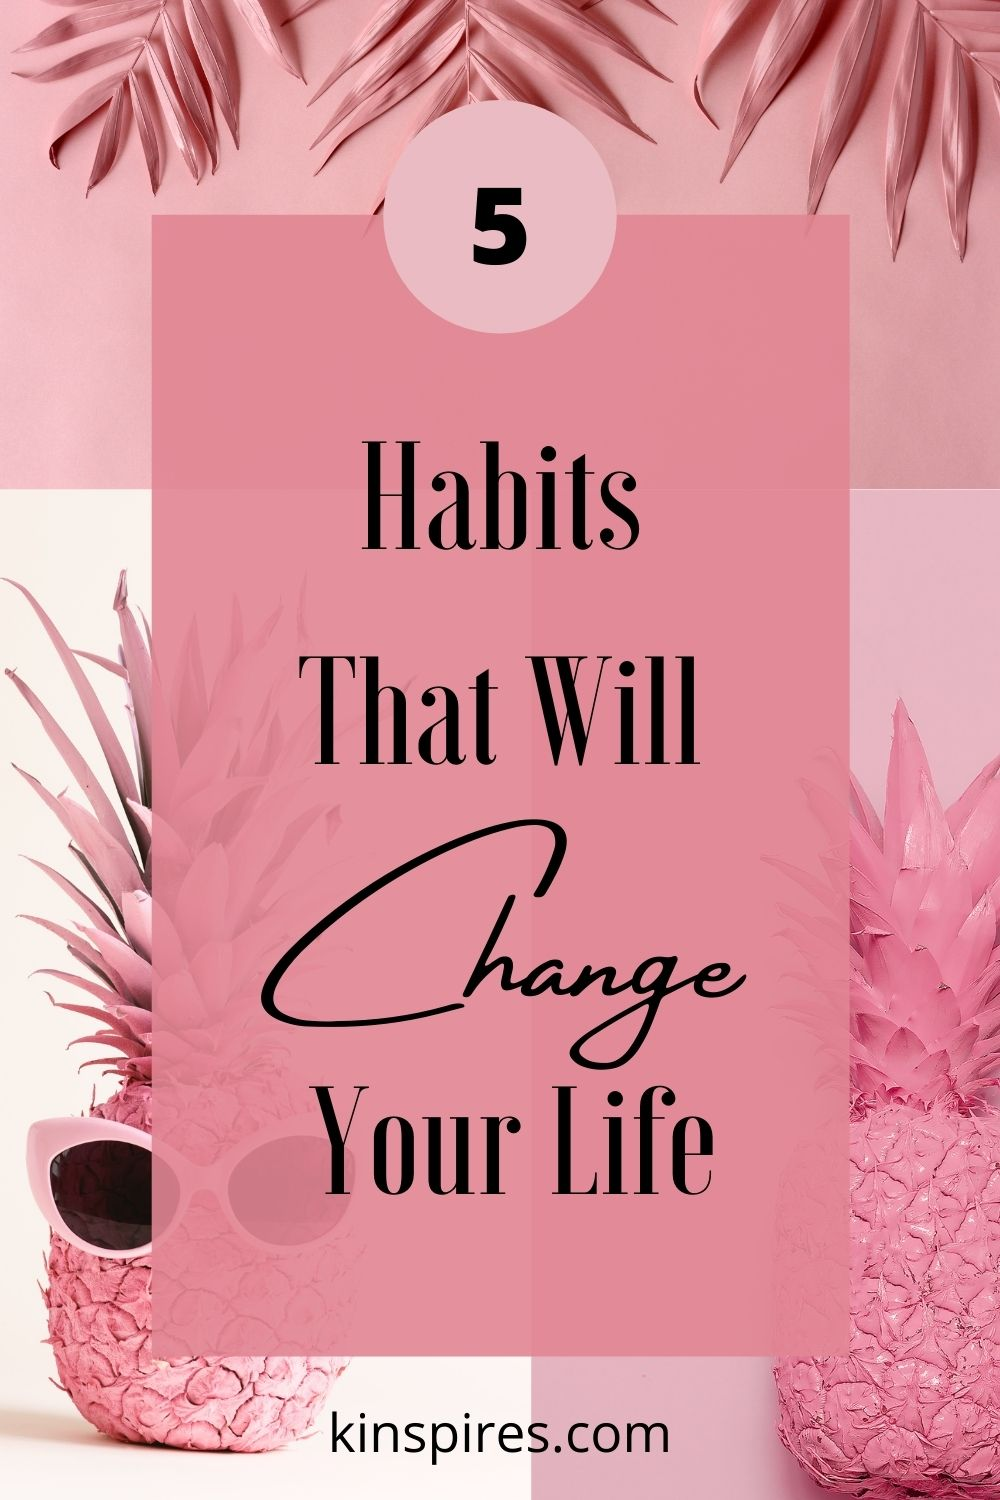 habits-that-will-change-your-life